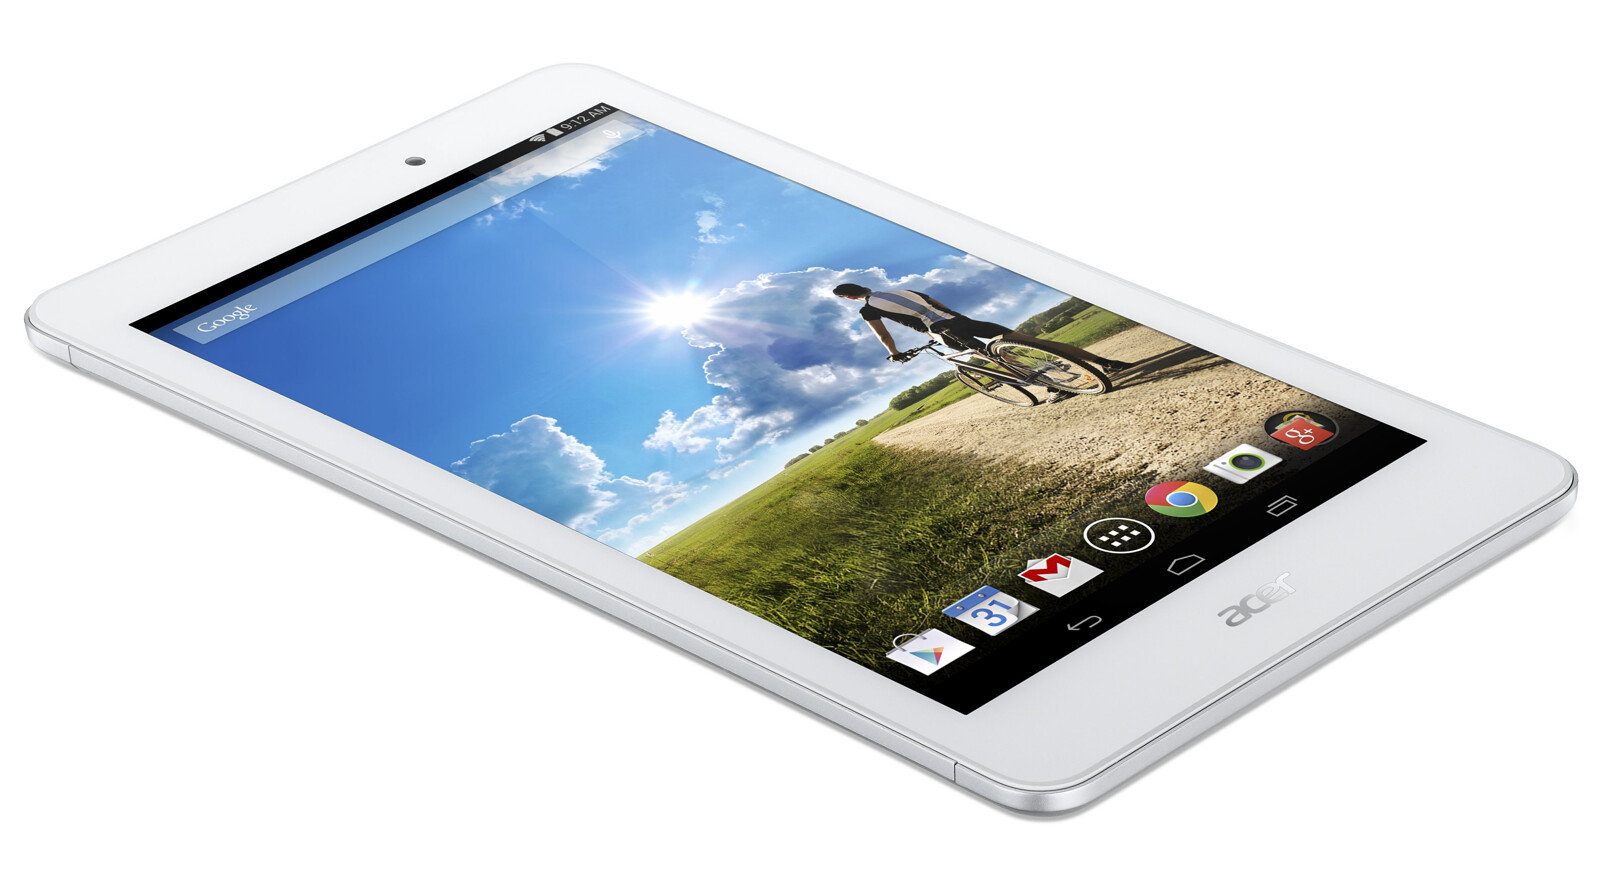 acer intros new iconia tab 8 android tablet quad core intel atom processor on board. Black Bedroom Furniture Sets. Home Design Ideas